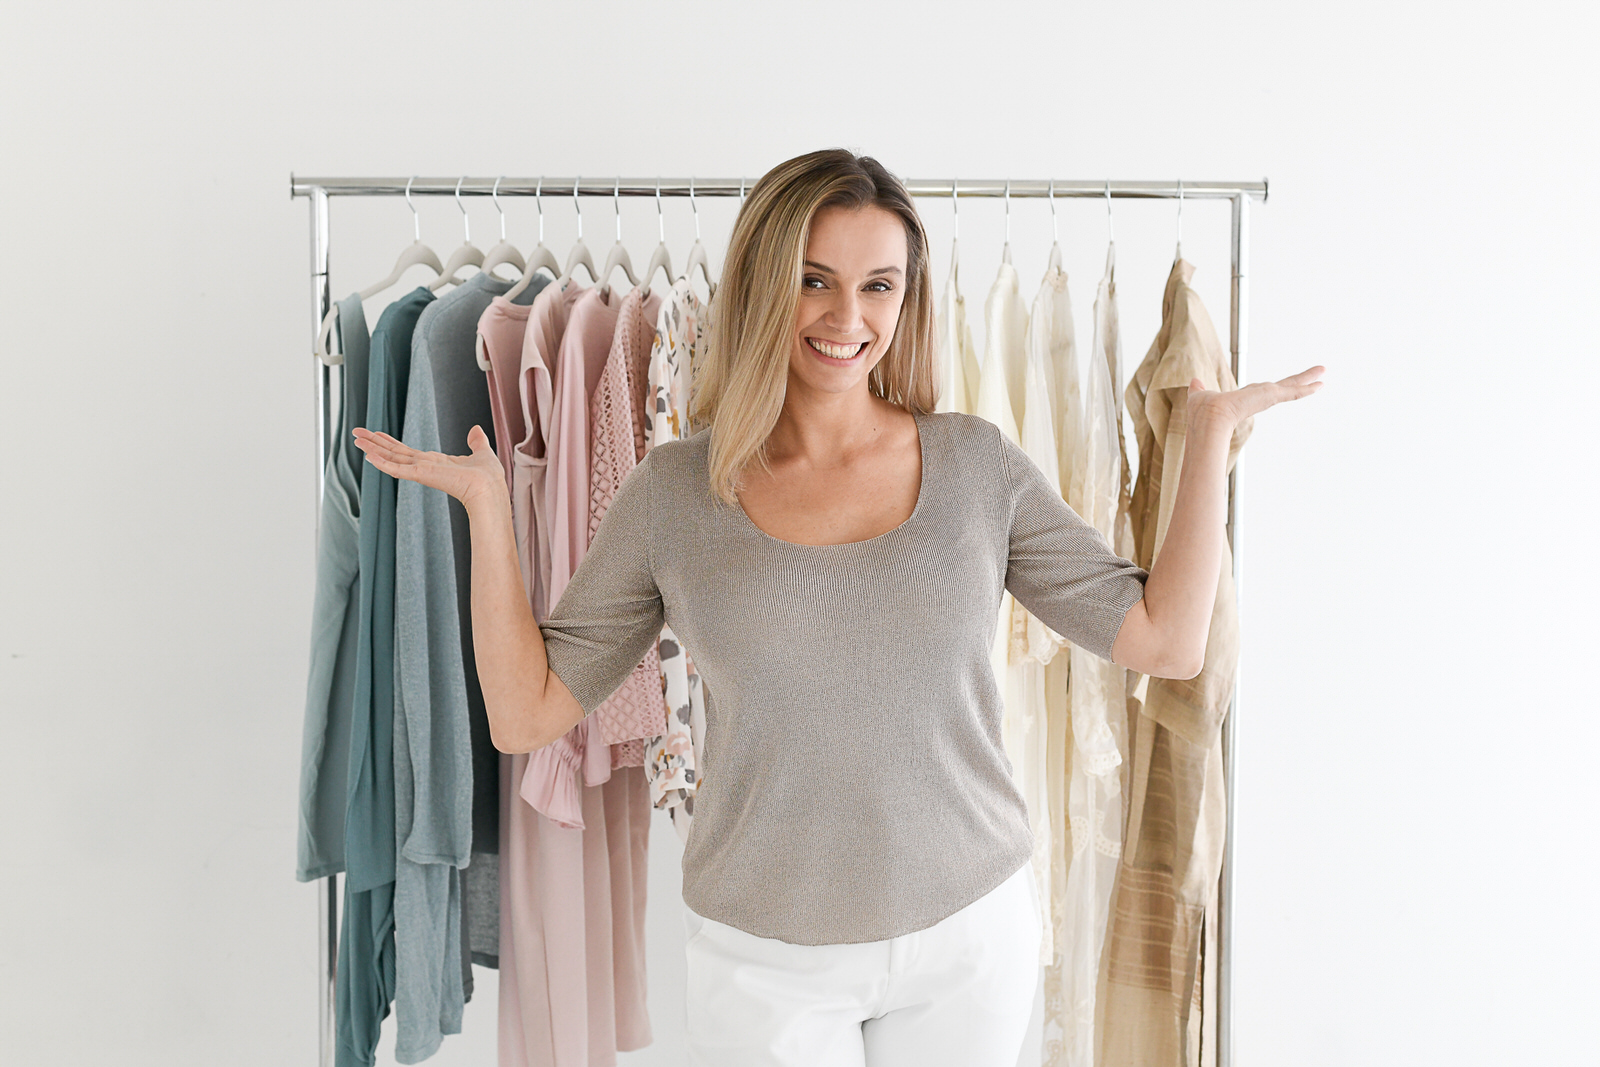 Sava in front of a clothing rack organized in the Kon Mari method